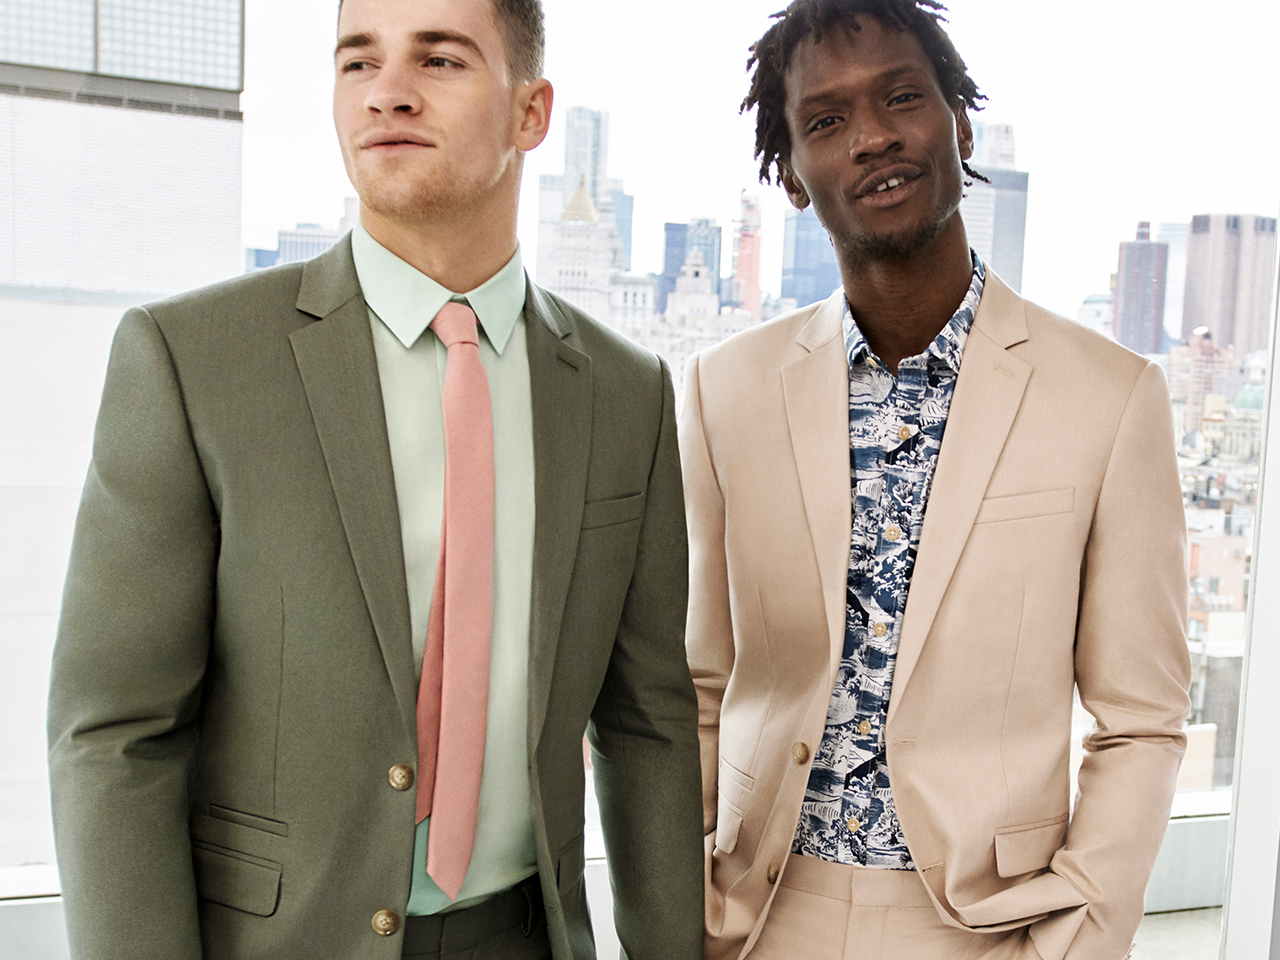 Shop men's suits at Express online or in-store